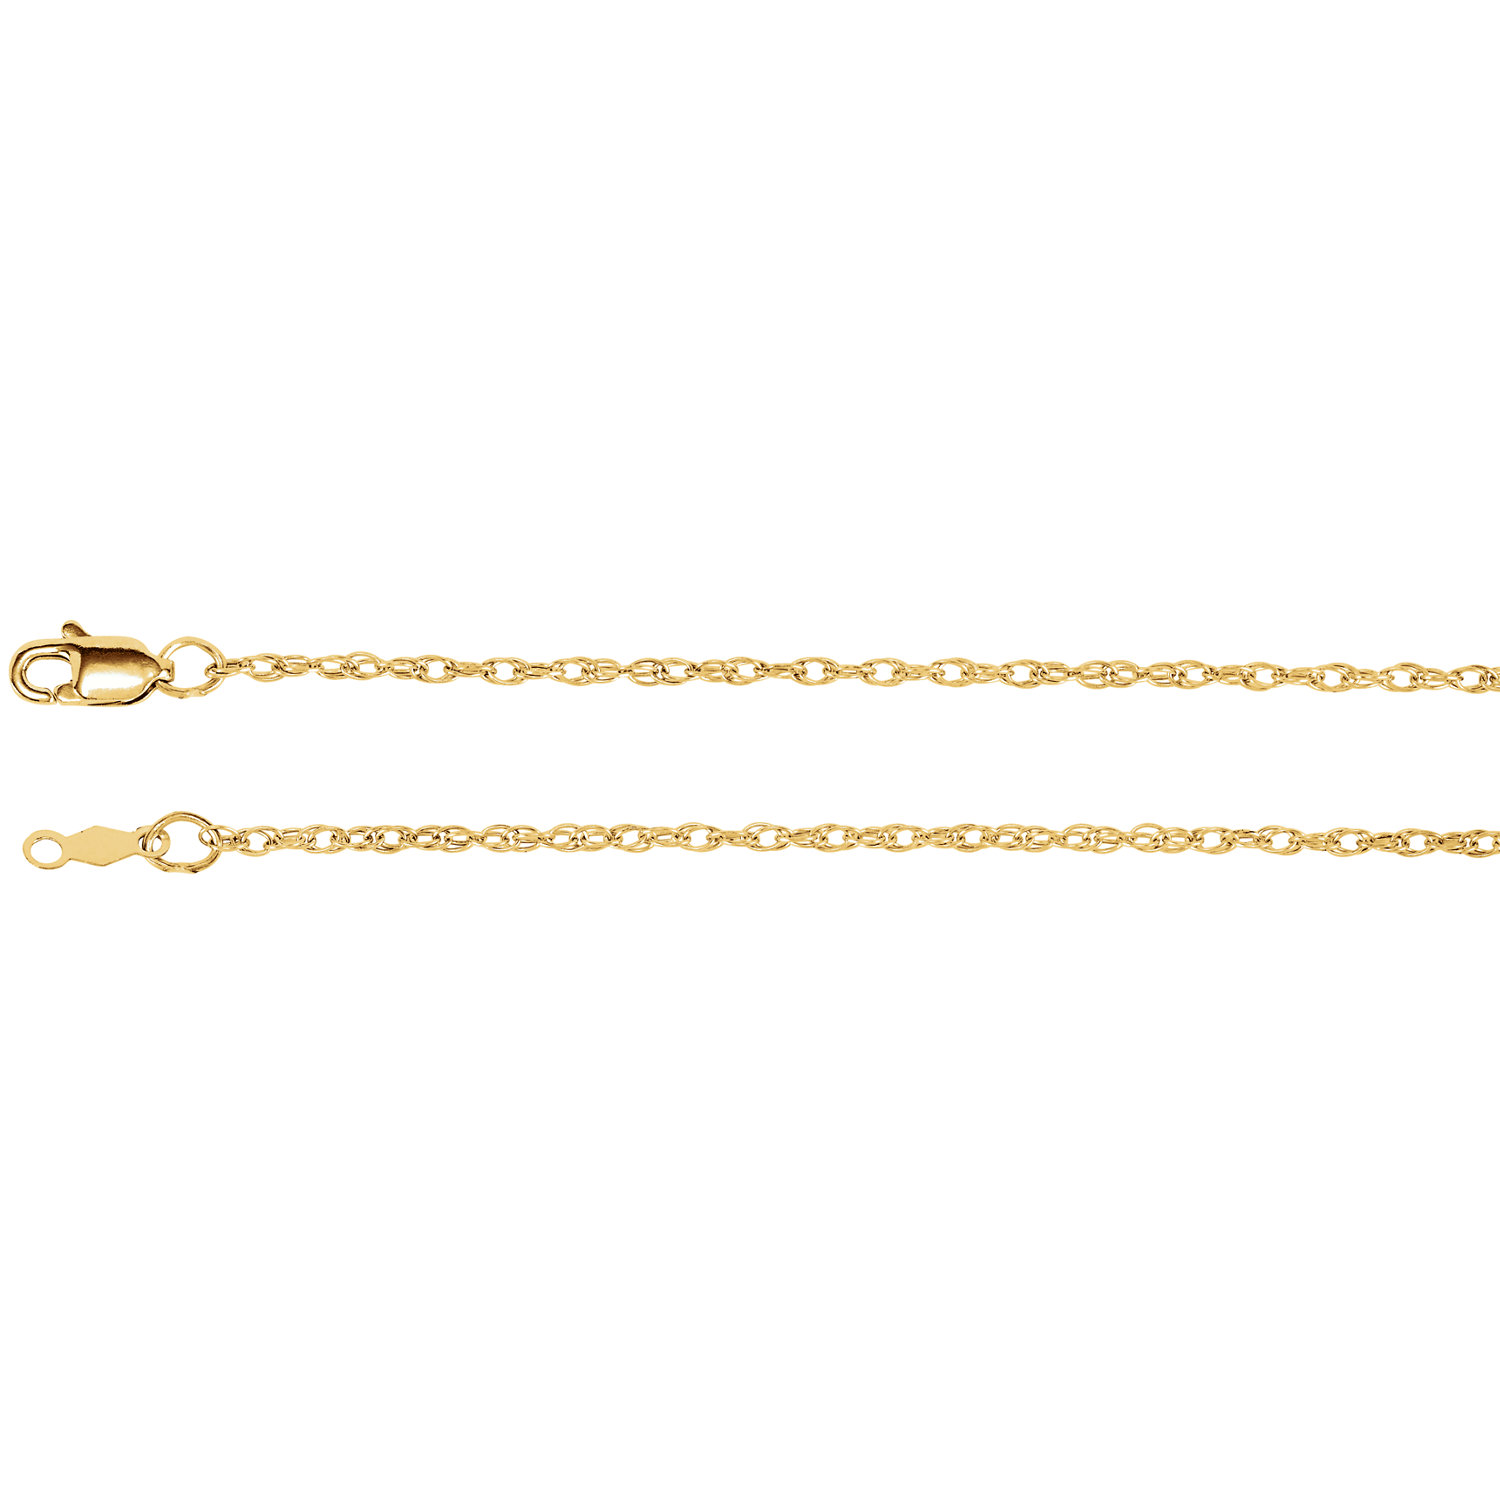 "16"" 14K Yellow Gold Rope Pendant Chain by Stuller"